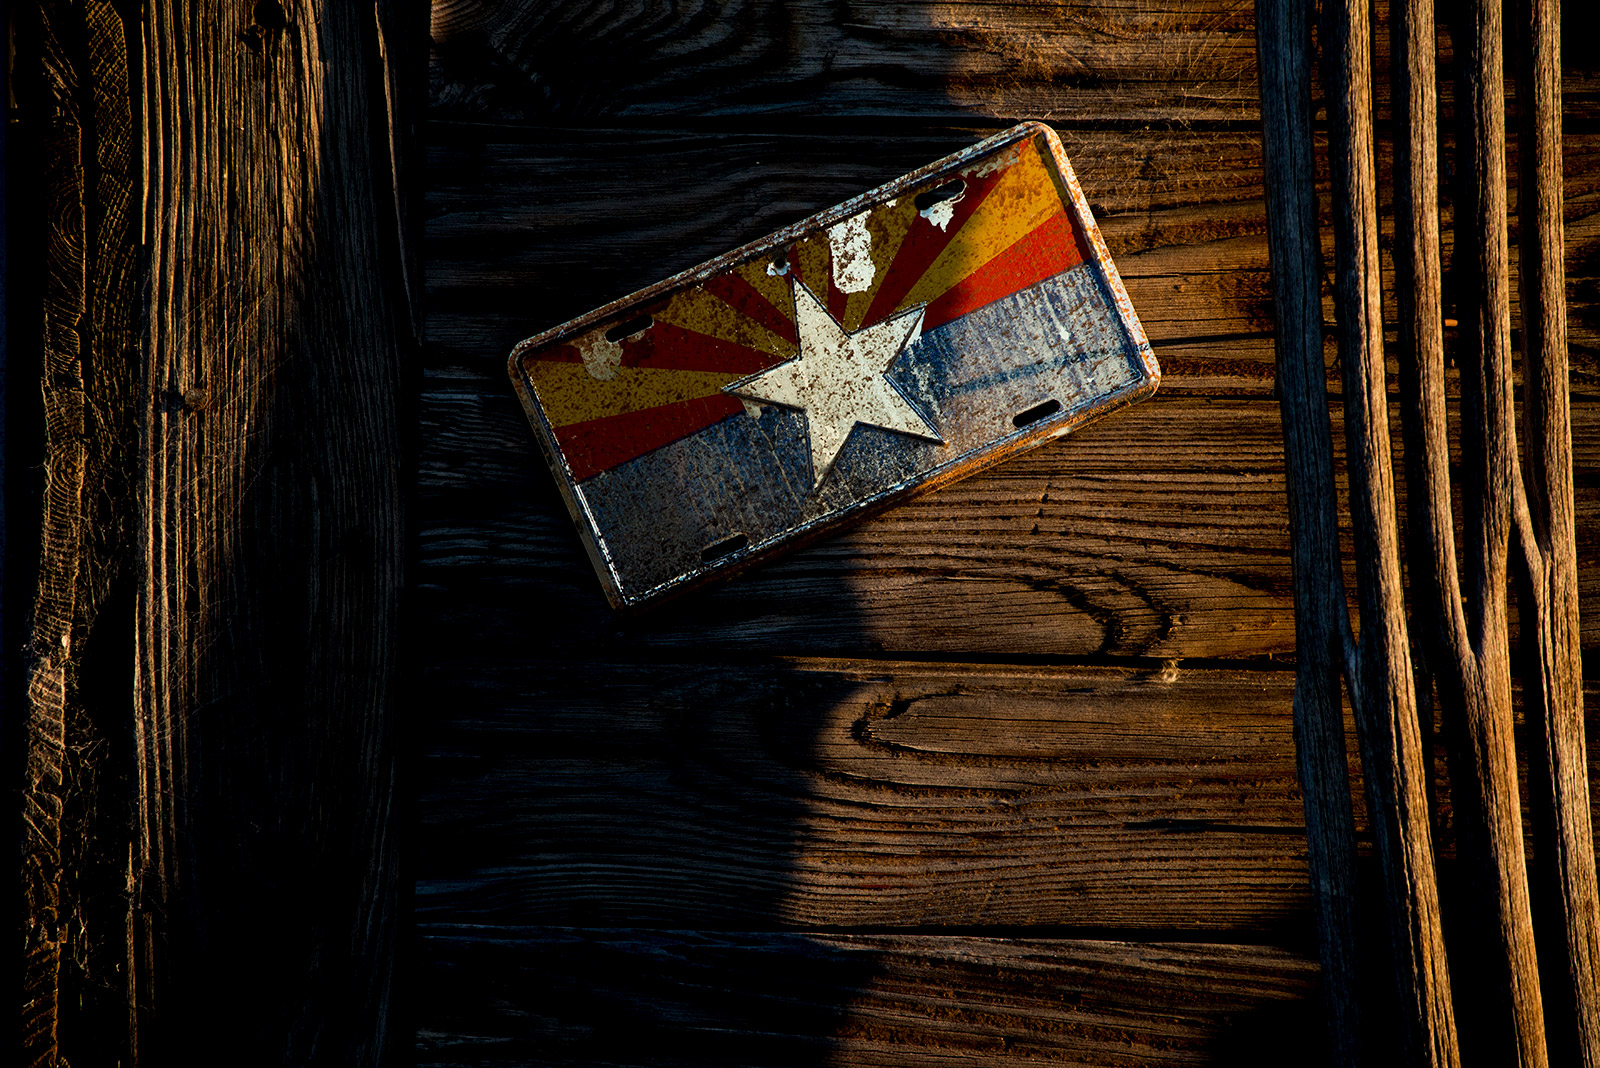 An Arizona license plate is nailed to the wall of a small barn outside Ajo, Arizona, on Aug. 25, 2017. The barn is used Aguilas Del Desierto, a group that searches for lost migrants in the desert. <em>(Brandon Quester/inewsource)</em>